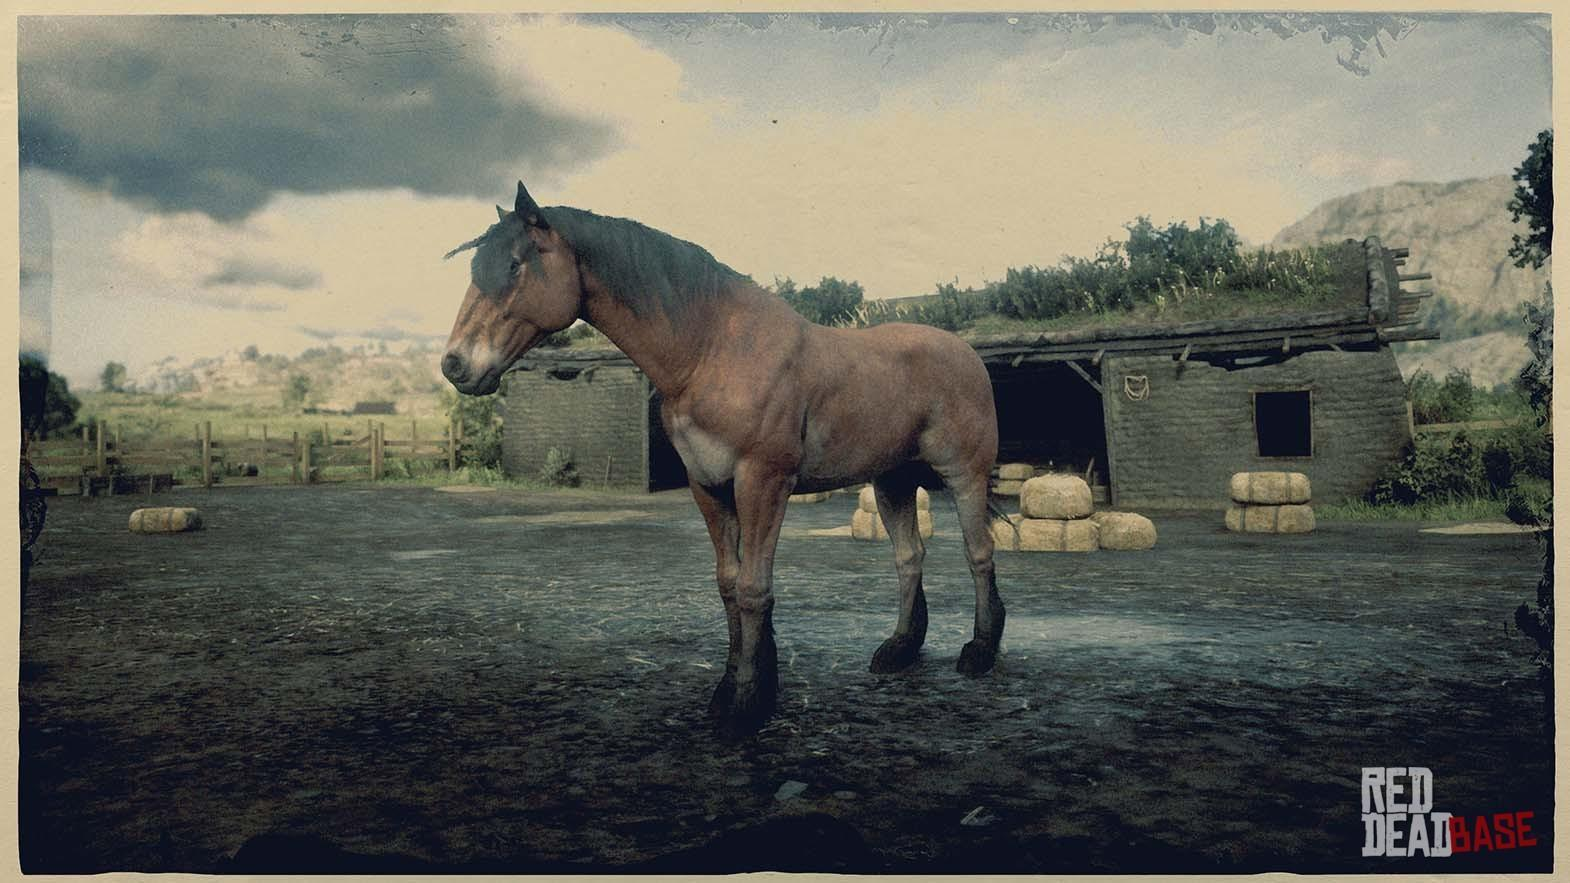 Mustang Red Dead Redemption 2 Horse Breeds Guide Red Dead Redemption 2 Animals Species Wildlife Database Red Dead Redemption 2